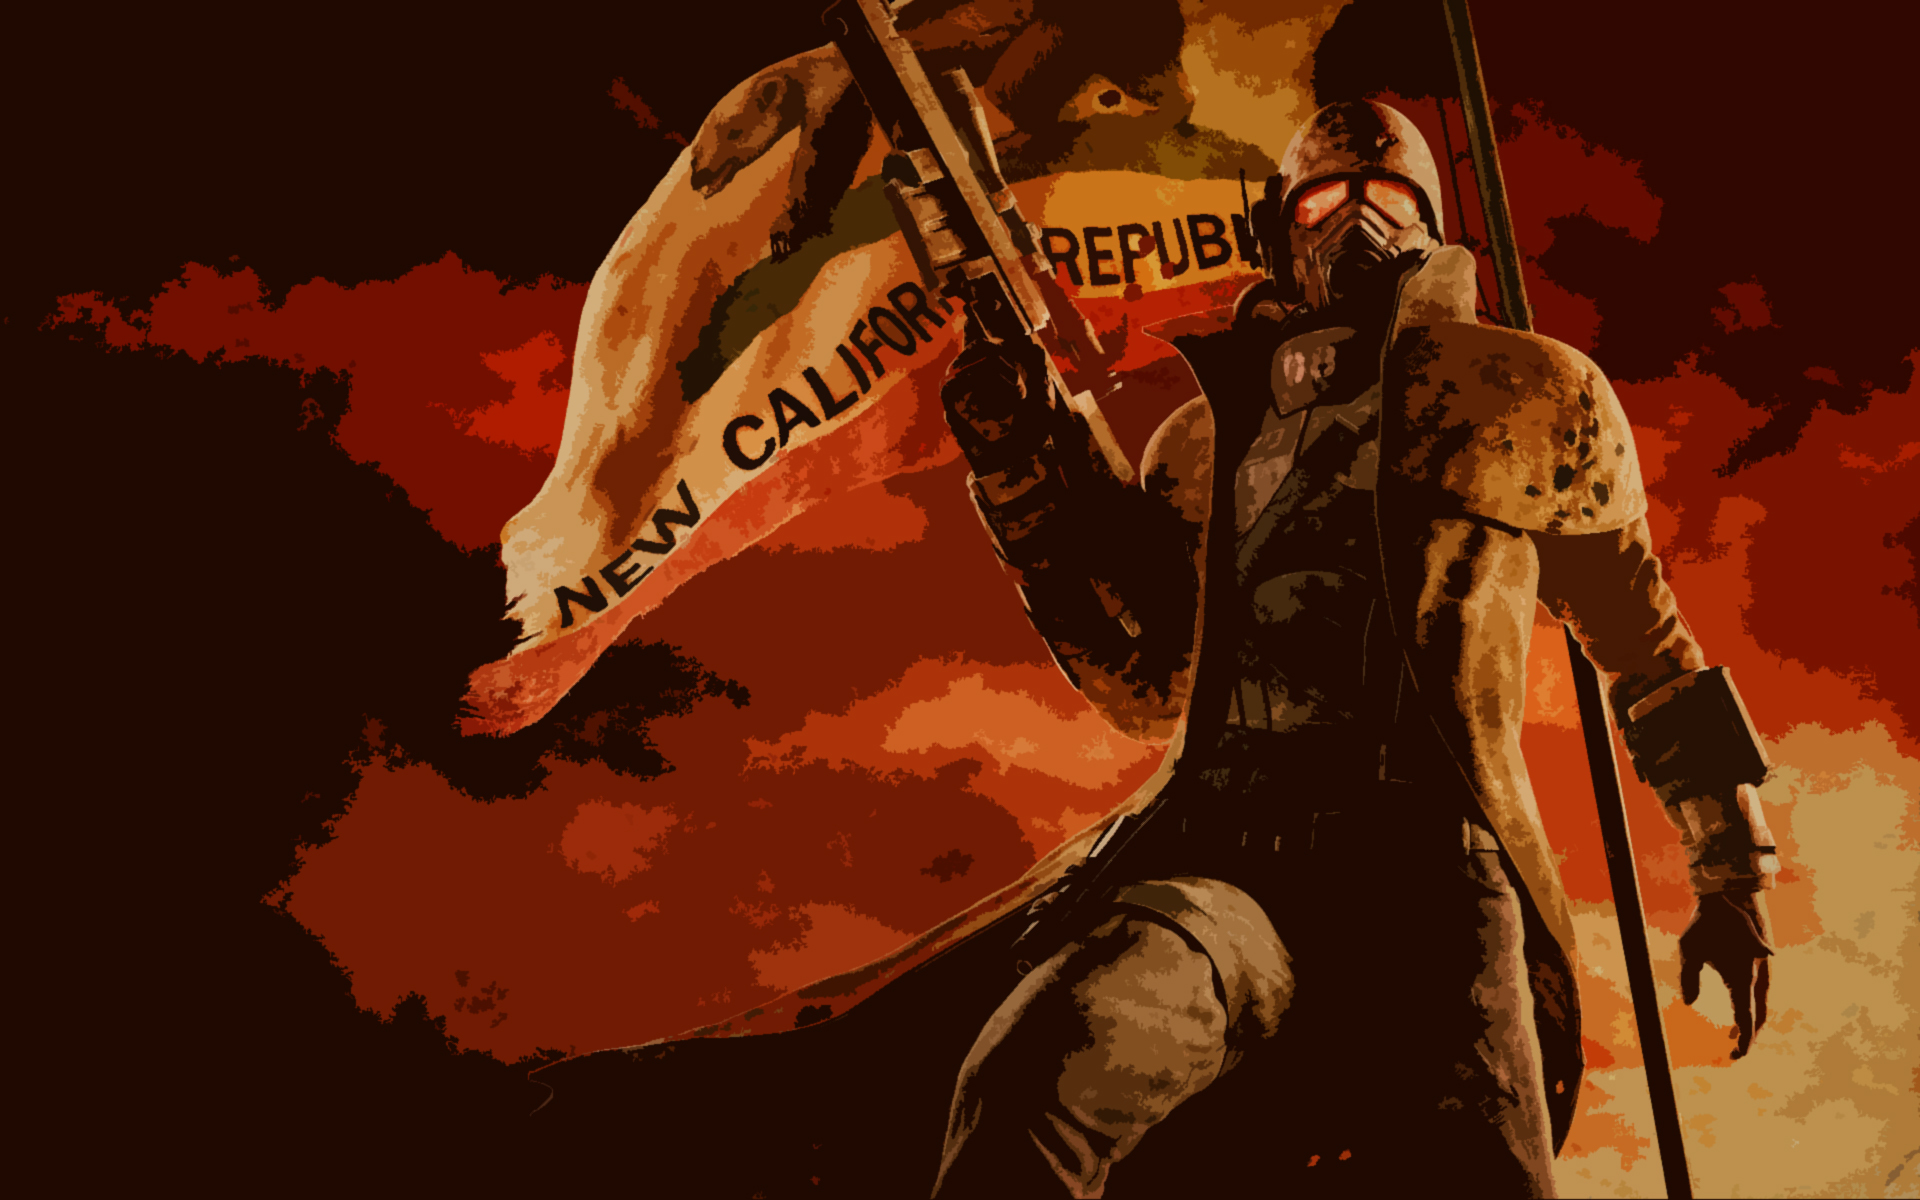 NCR Now and Forever by TheOtherGuy101